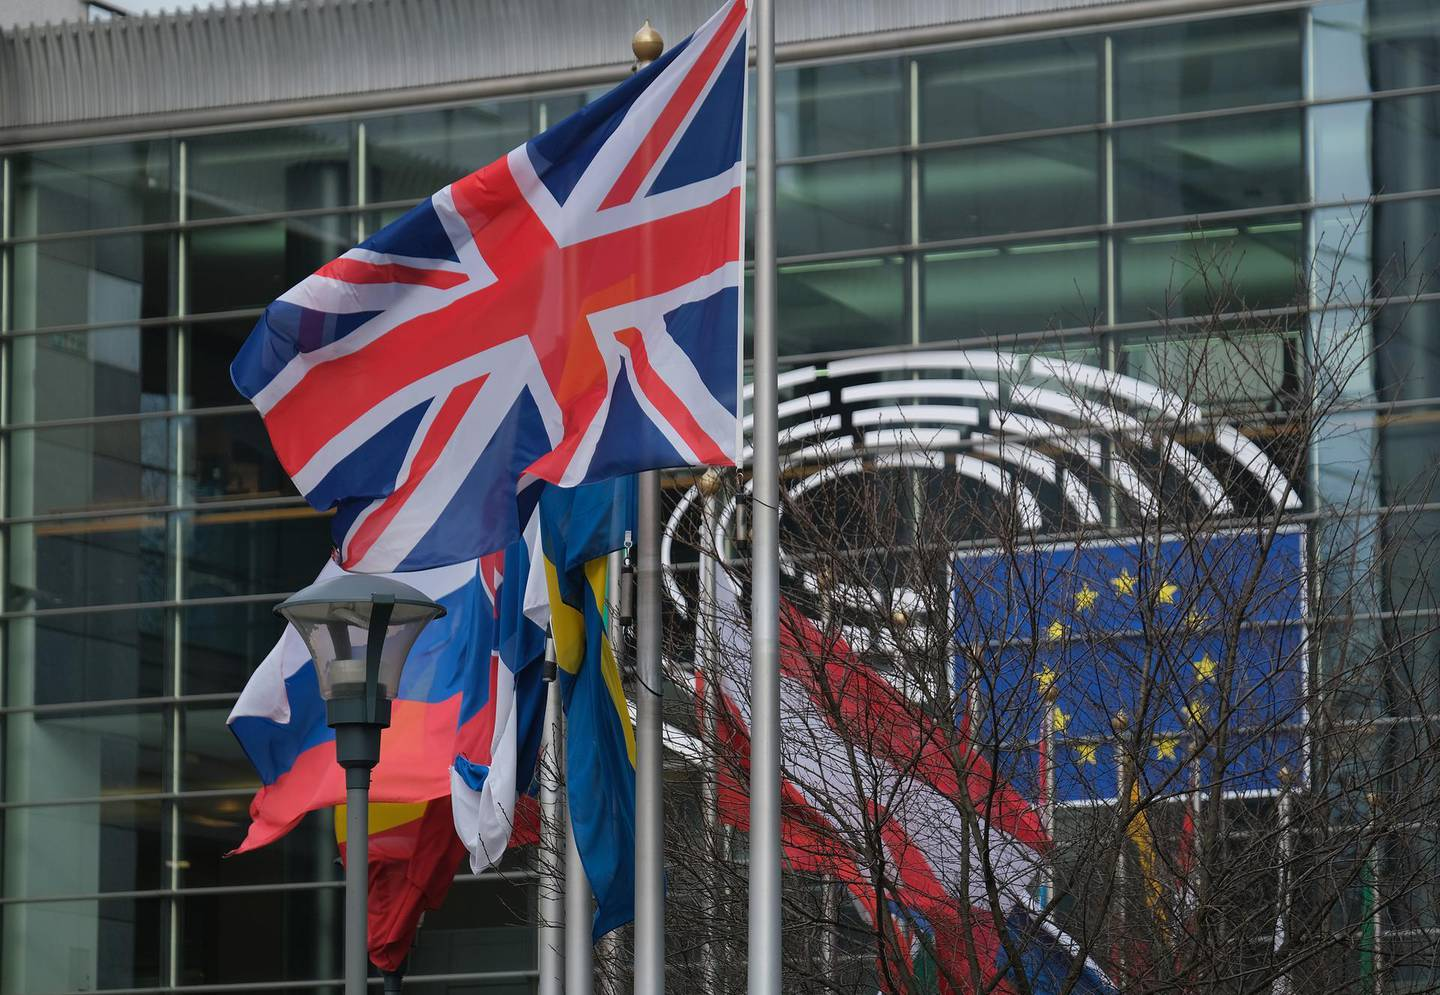 BRUSSELS, BELGIUM - JANUARY 30: The British flag flies among flags of member states of the European Union outside the European Parliament on January 30, 2020 in Brussels, Belgium. The day before the Parliament ratified the Brexit agreement, which will allow the United Kingdom to leave the EU tomorrow at midnight with a legislative framework agreed on between the two entities.  (Photo by Sean Gallup/Getty Images)